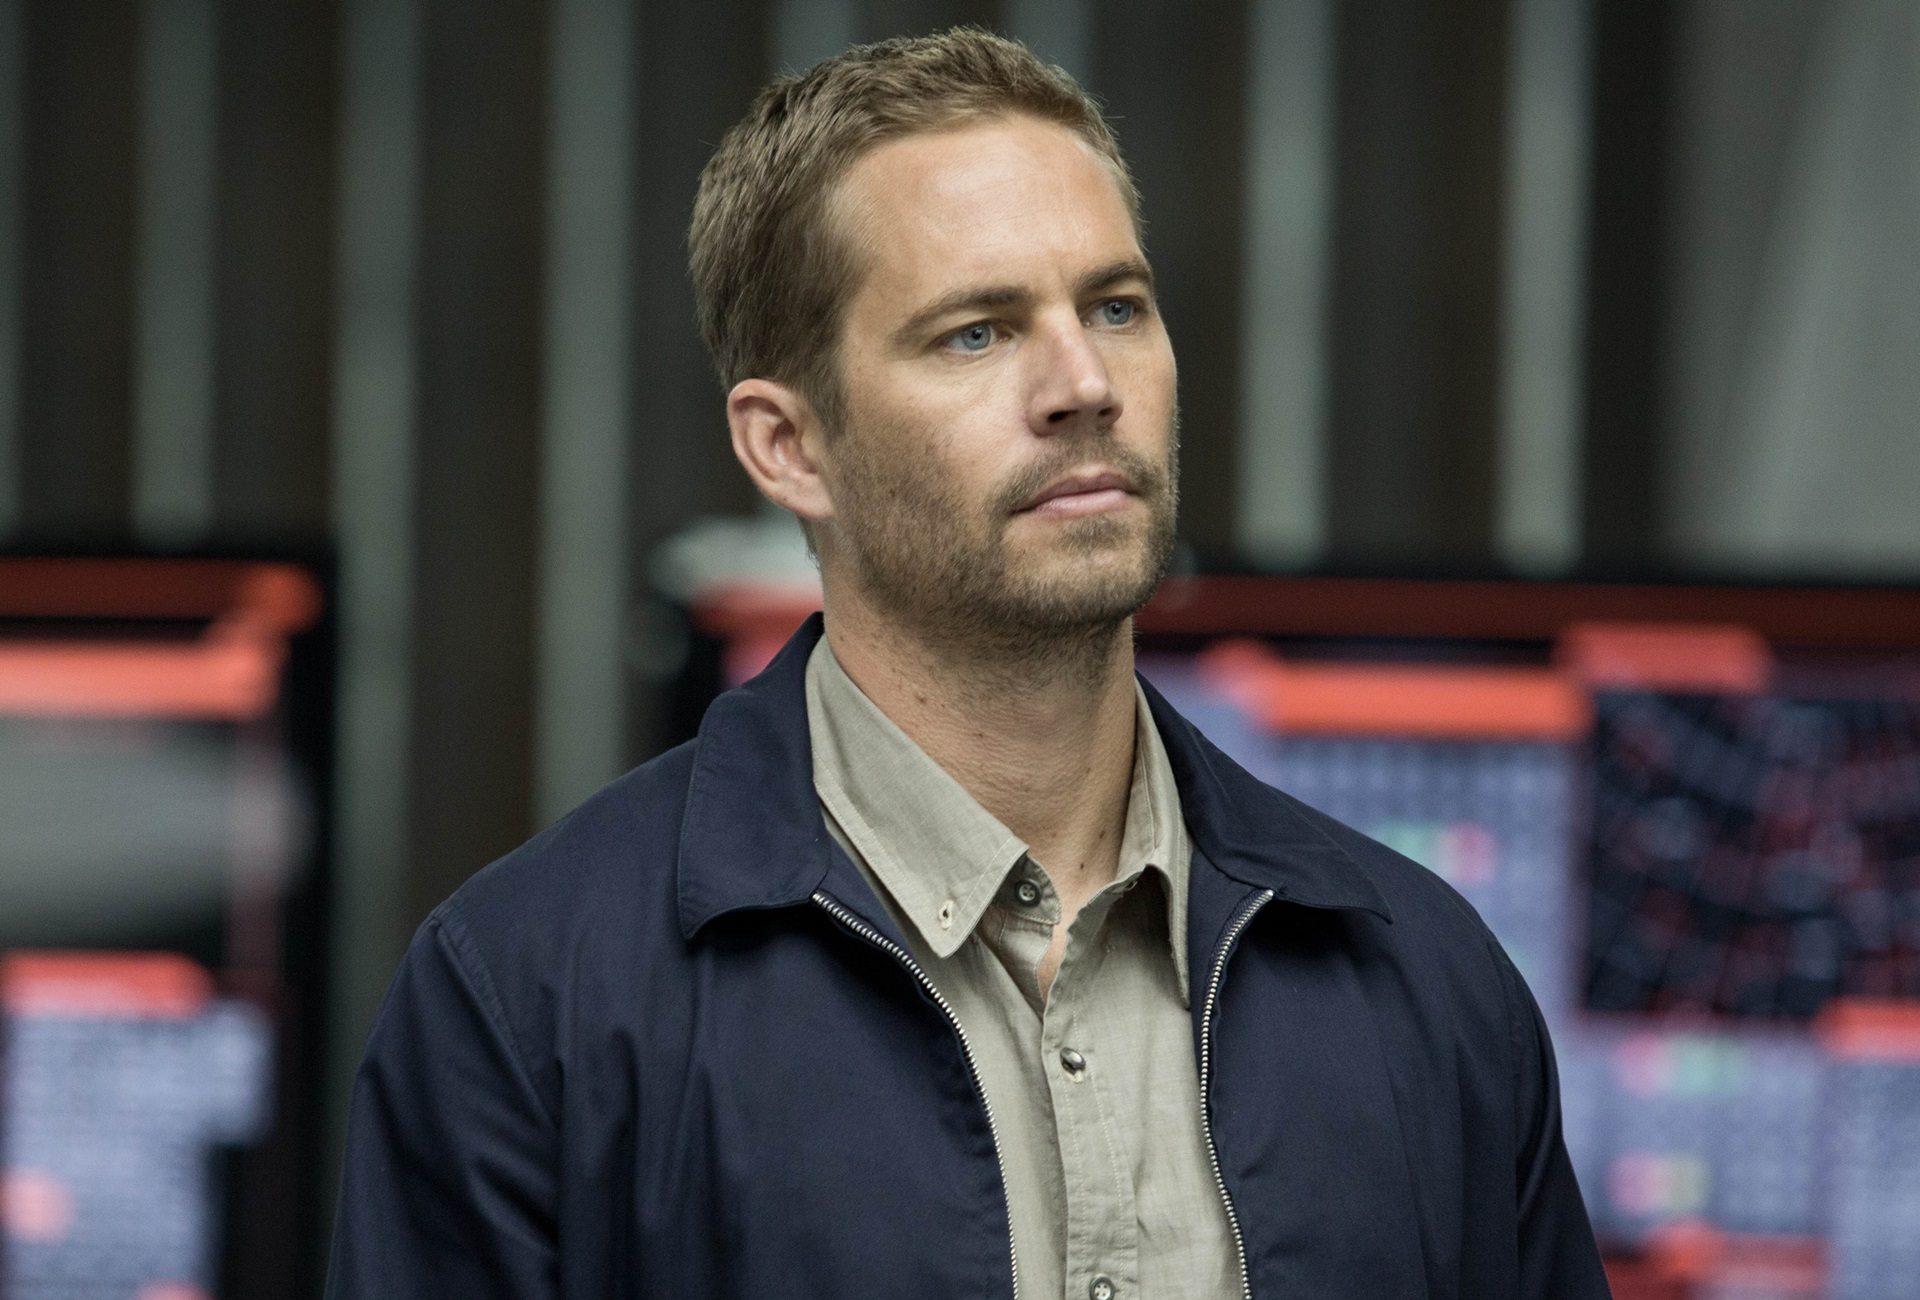 FAST & FURIOUS 7 Will Retire Paul Walker's Character ...